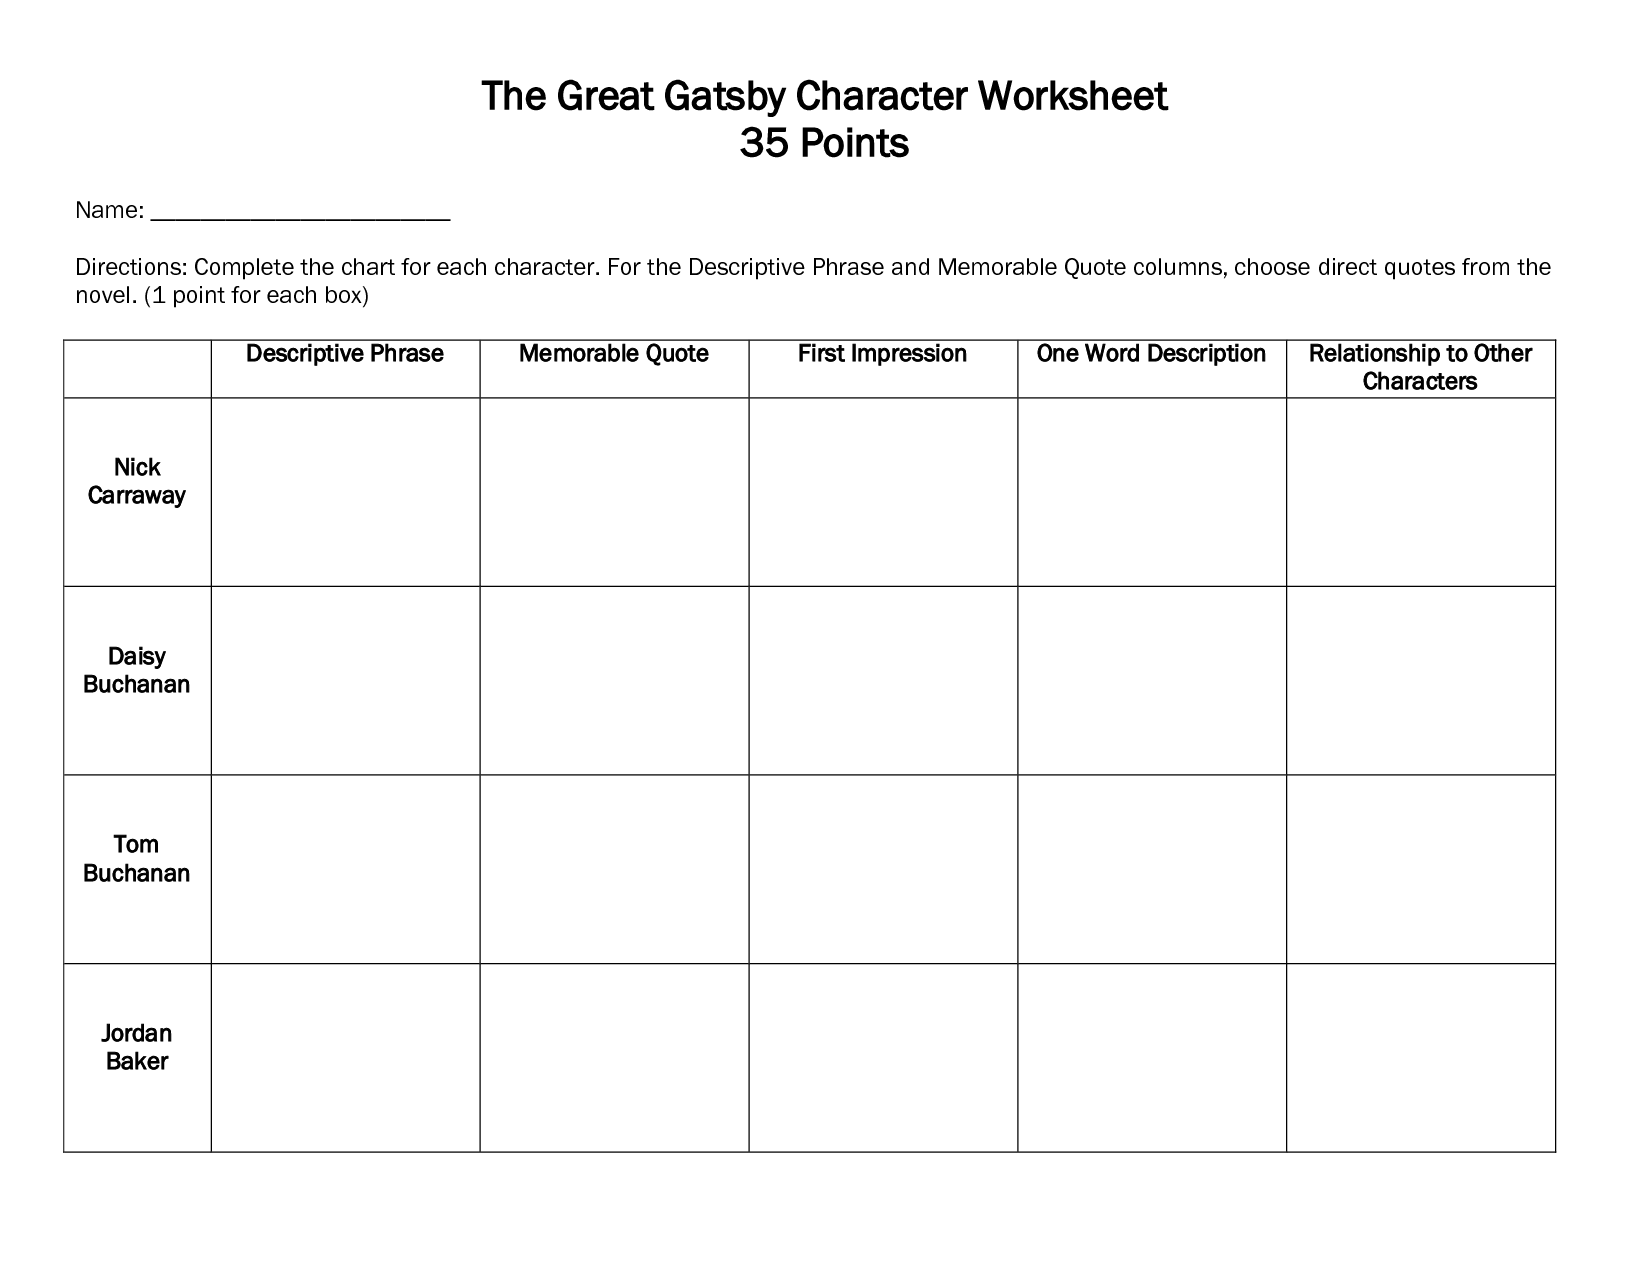 worksheets for great gatsby chapter 3 of the great gatsby worksheets for great gatsby the great gatsby character worksheet 35 points directions